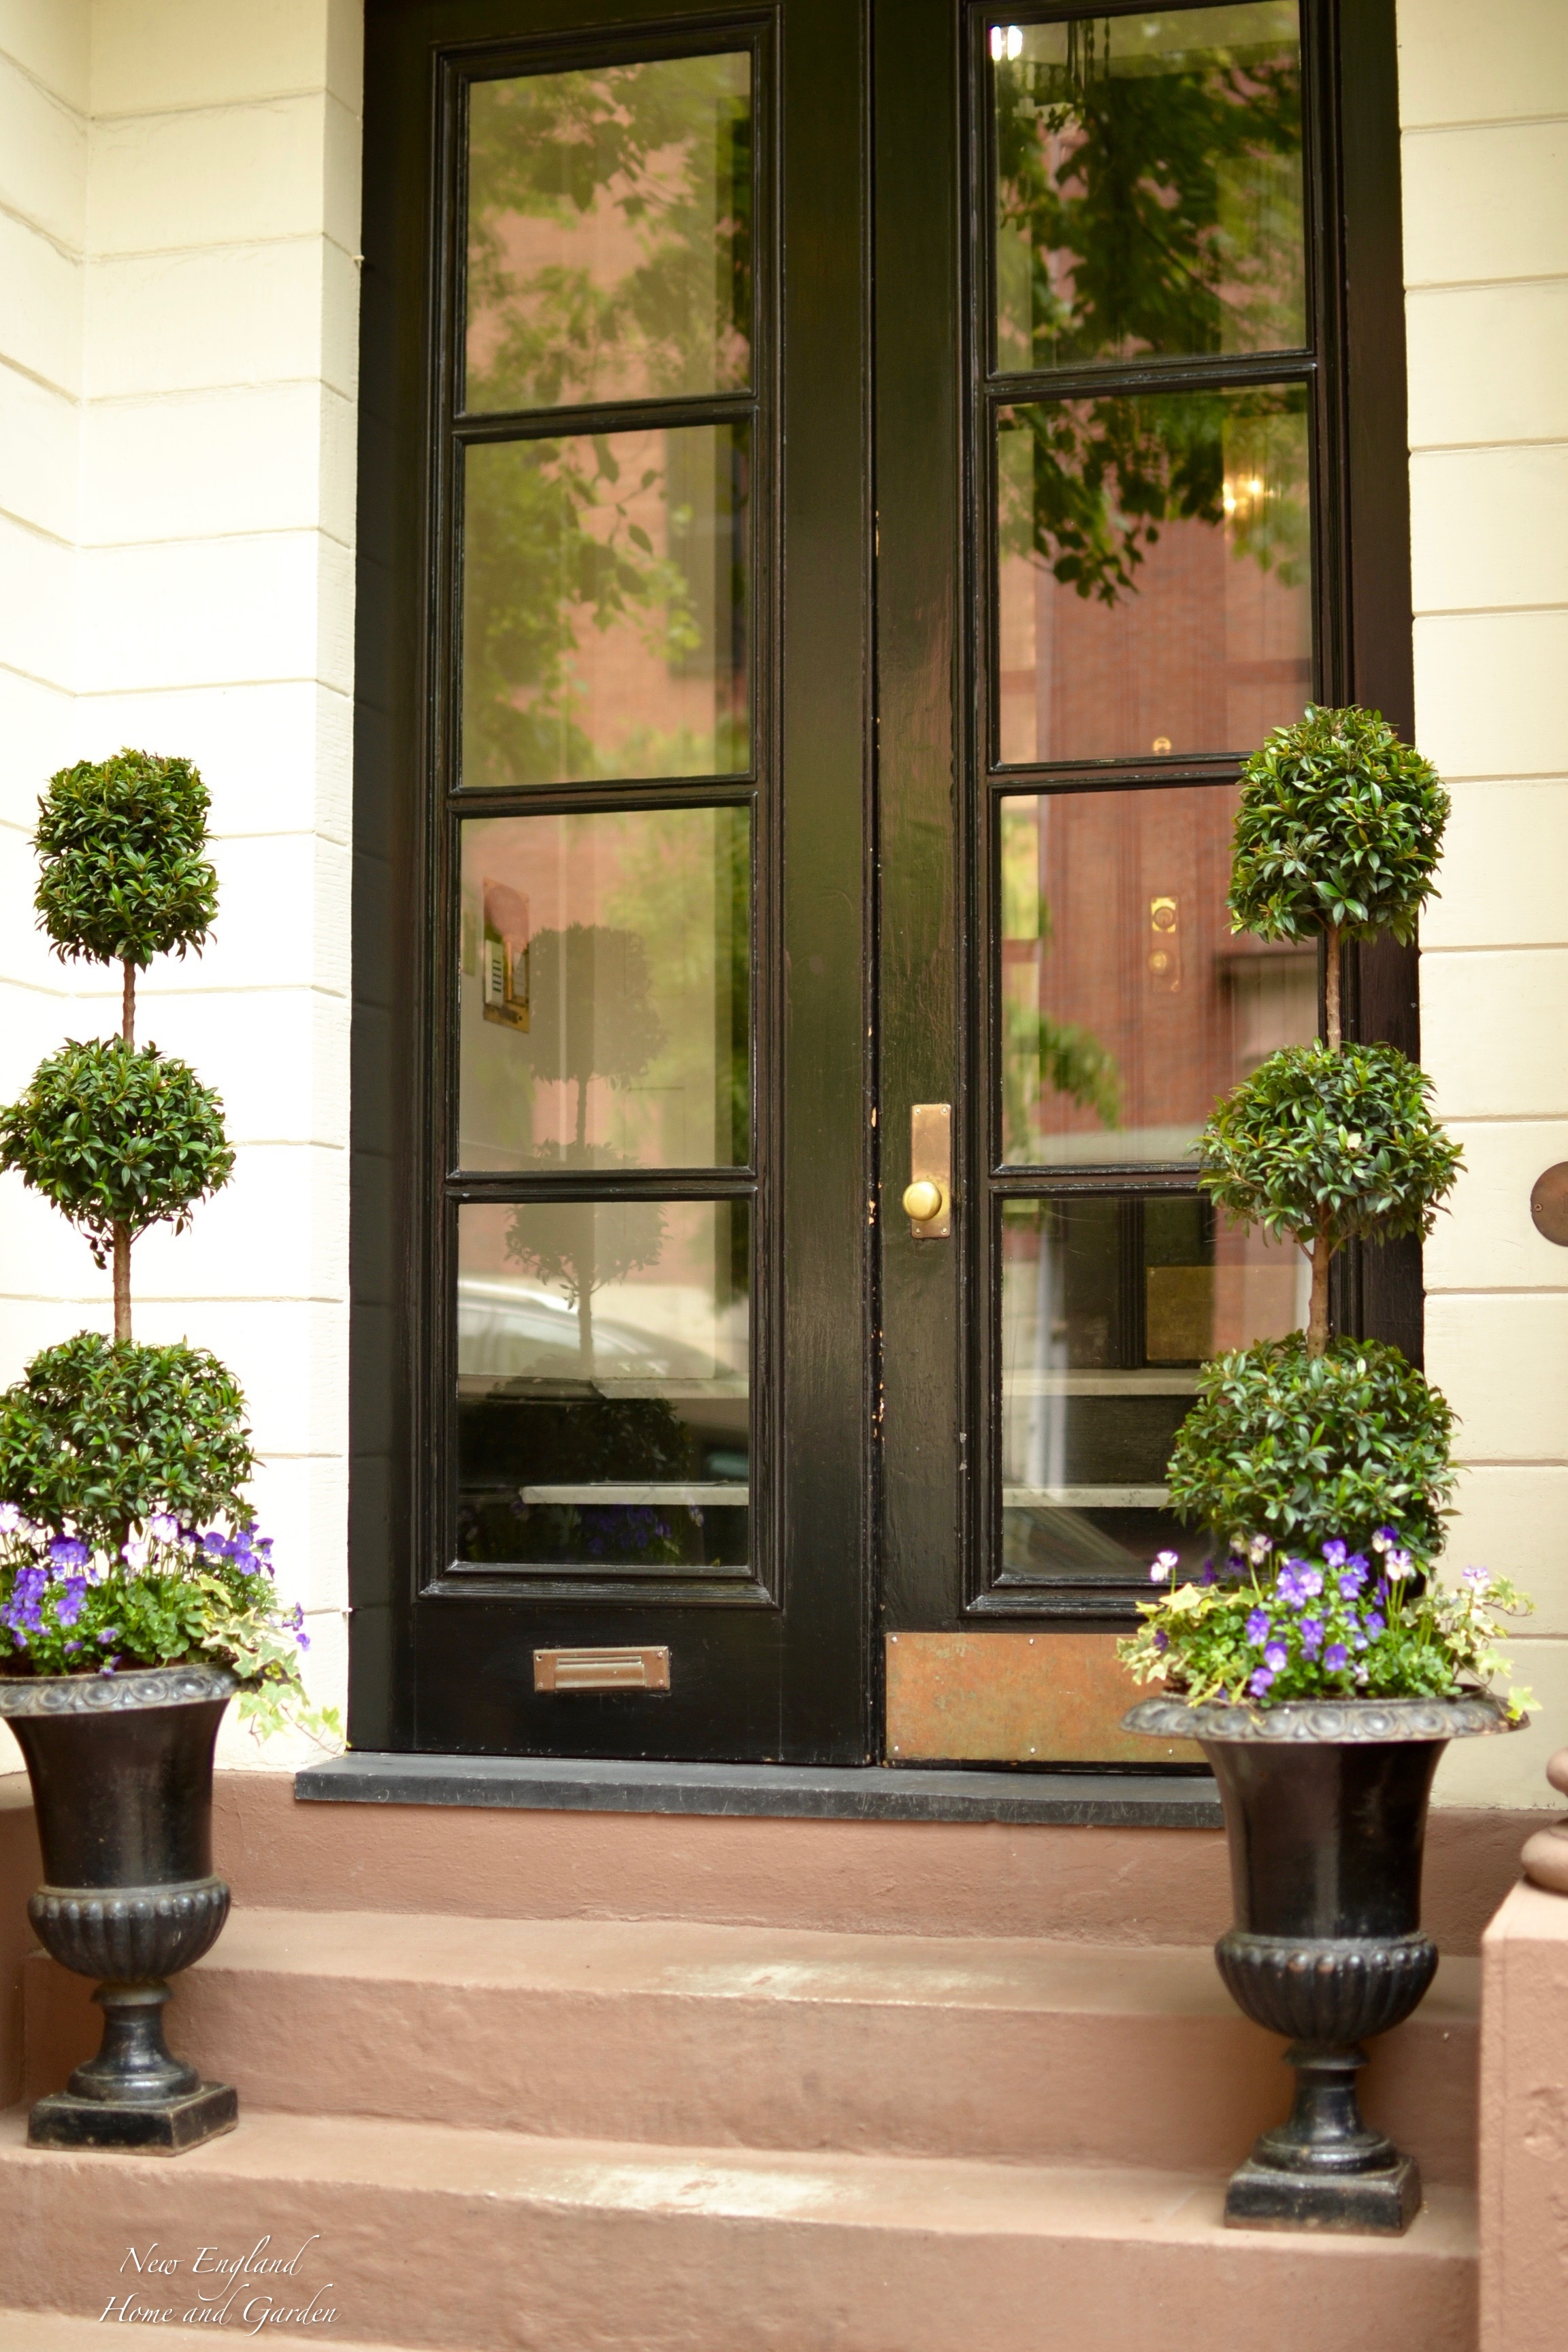 New England Home And Garden. Doors That Welcome